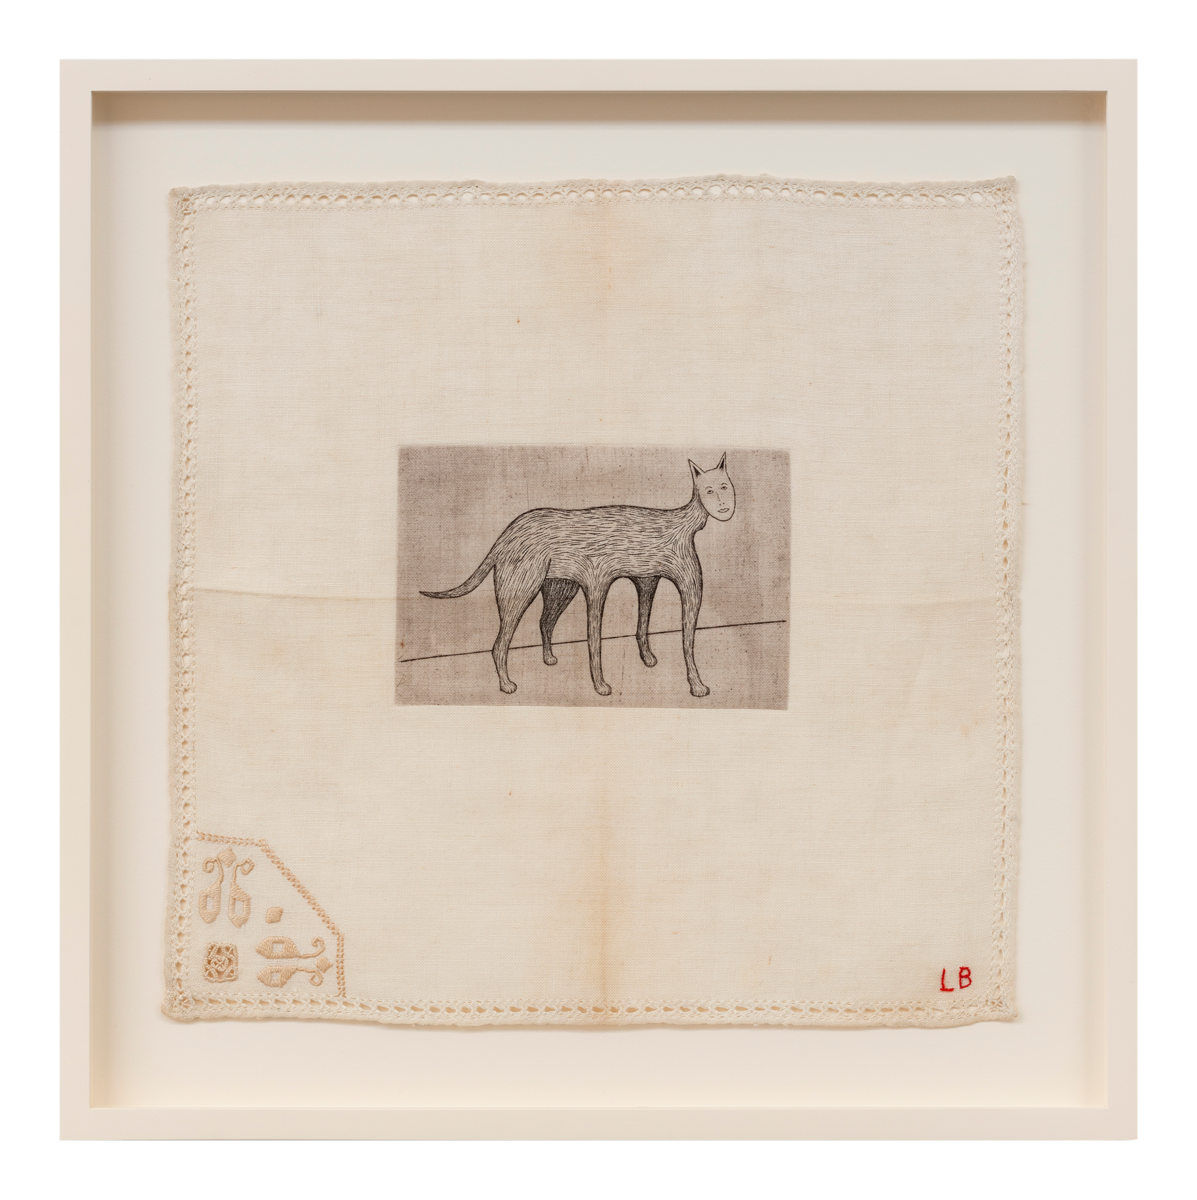 Louise Bourgeois Self Portrait original drypoint and engraving on fabric signed with initials in red thread and numbered on reverse for sale